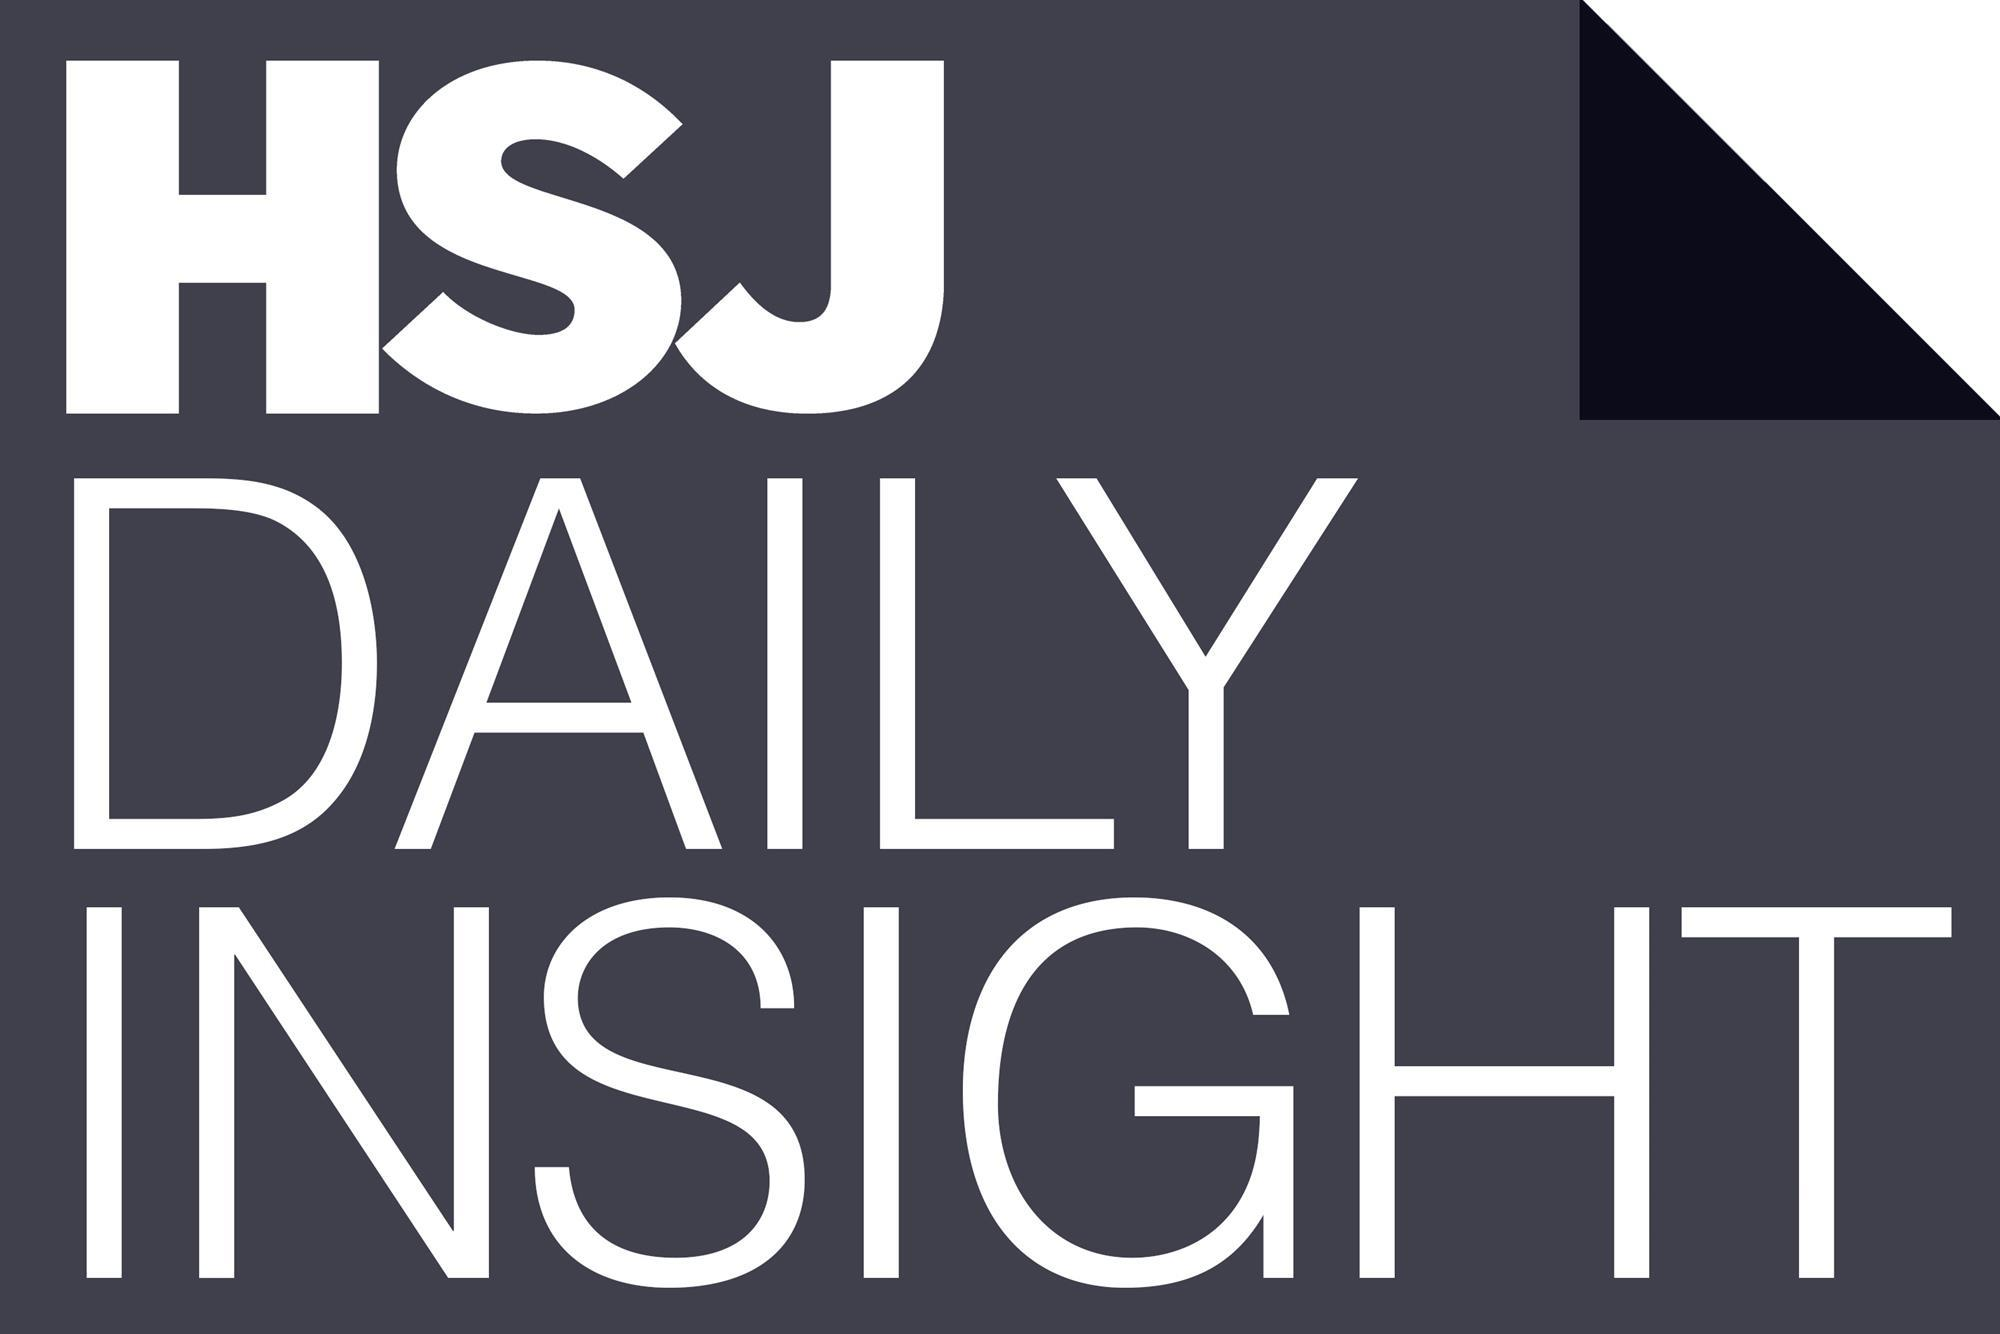 Daily Insight: Supply and demand